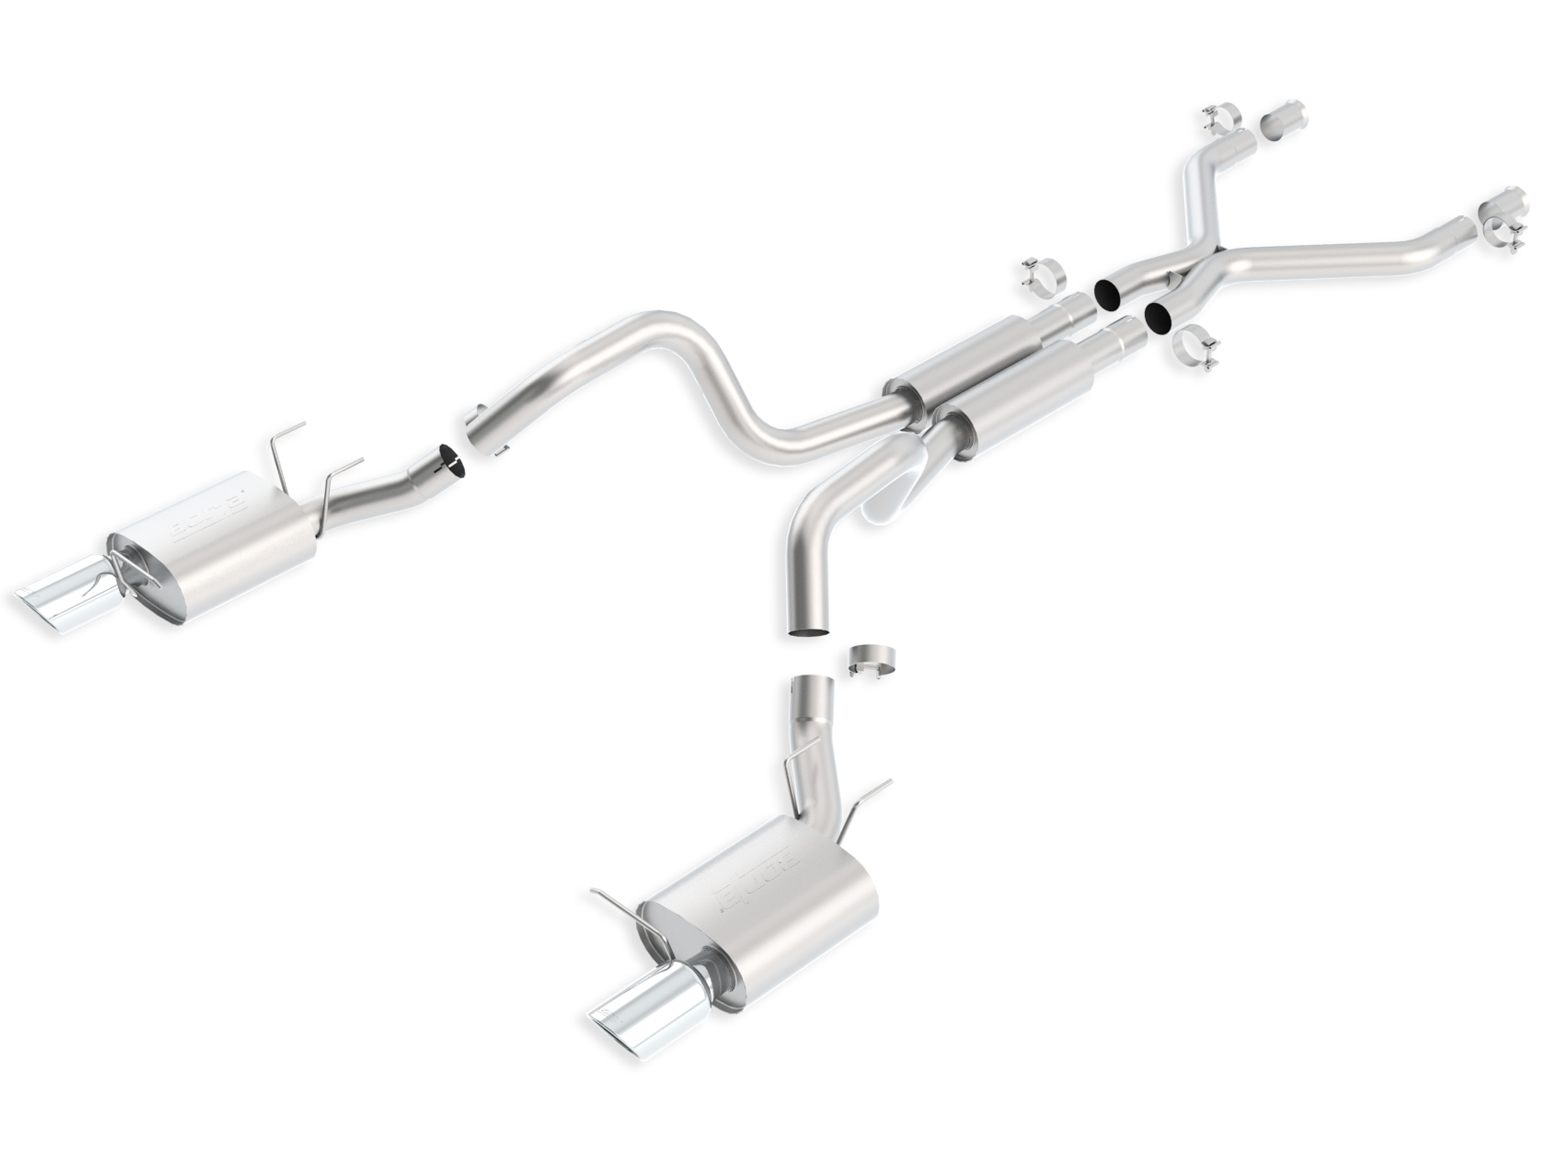 "Ford Mustang Shelby Gt 500 2011-2012 Borla 3"" Cat-Back Exhaust System - Single Round Rolled Angle-Cut  Long X Single Round Rolled Angle-Cut Intercooled"" Dia"